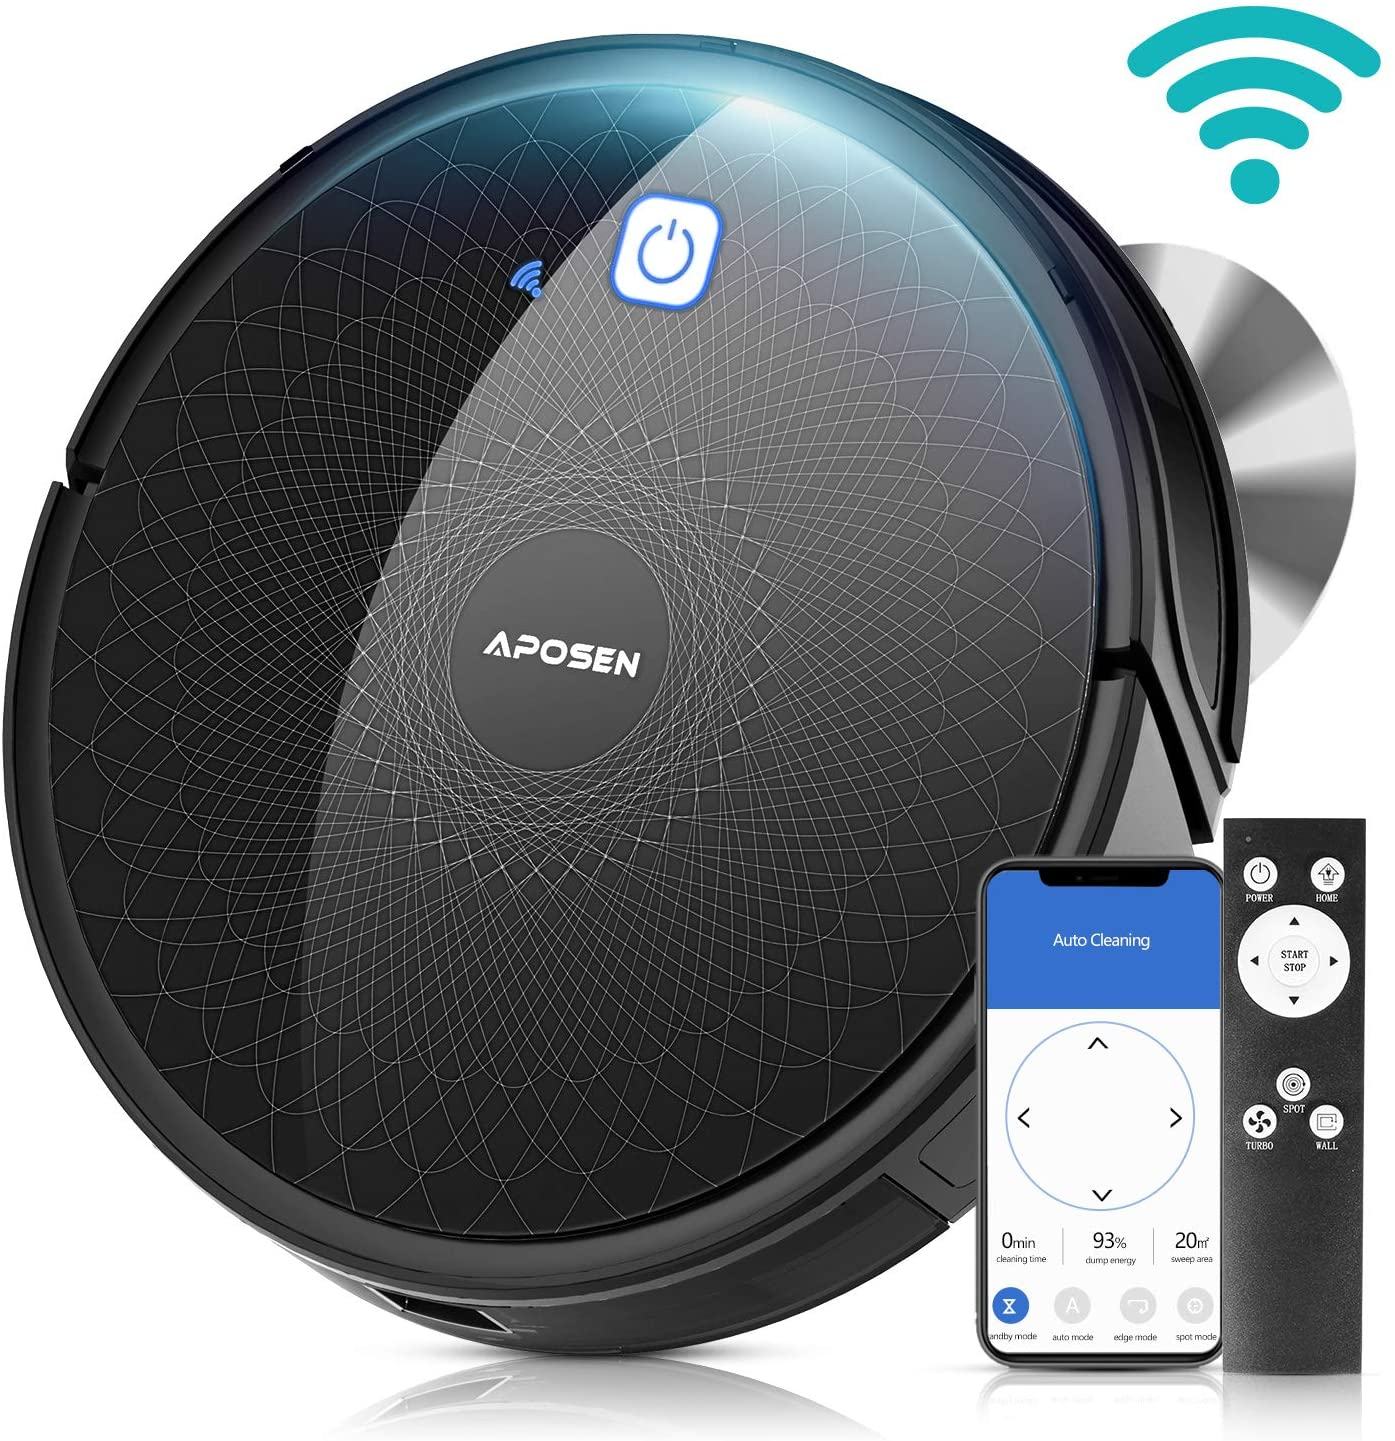 APOSEN Robot Vacuum Cleaner With Mapping Technology